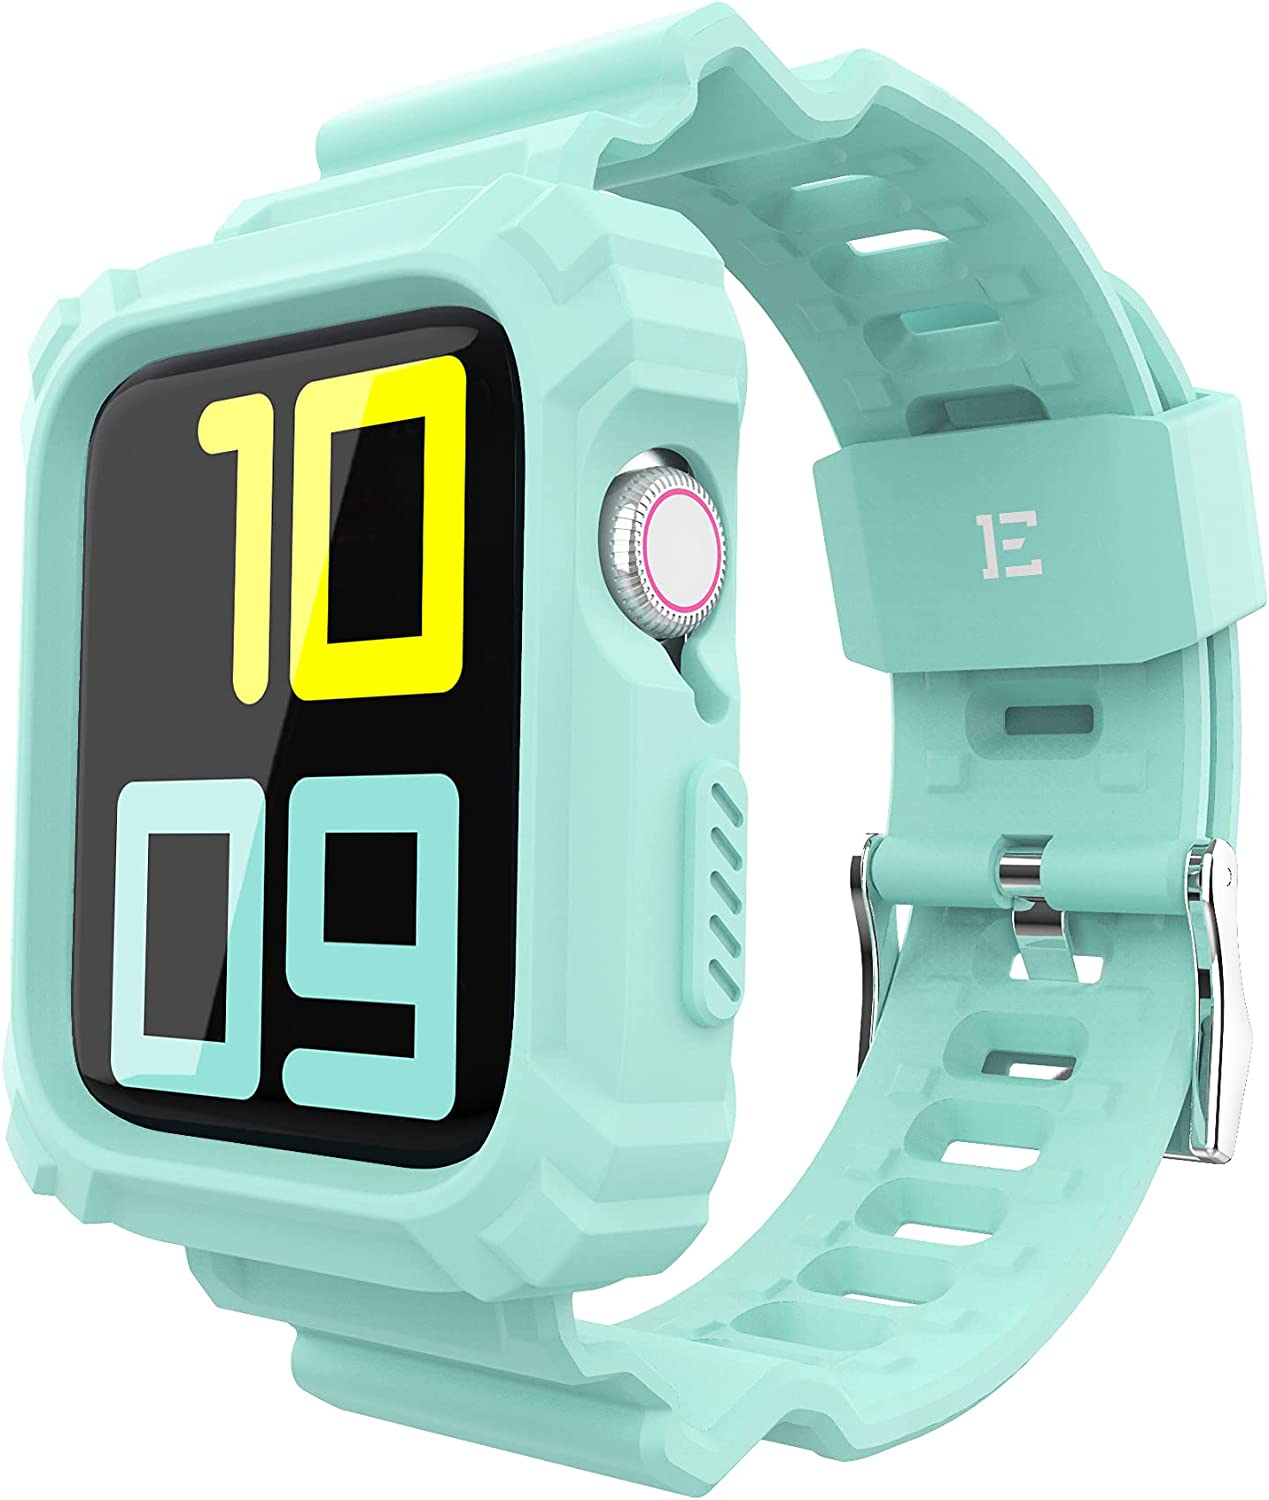 ExoGuard Designed for Apple Watch Bands 42mm 44mm Series with Case, Sports Style Shockproof Bumper Case with TPU Replacement Strap Bands Applicable to iWatch Series 6/5/4/3/2/1/SE - Mint Green